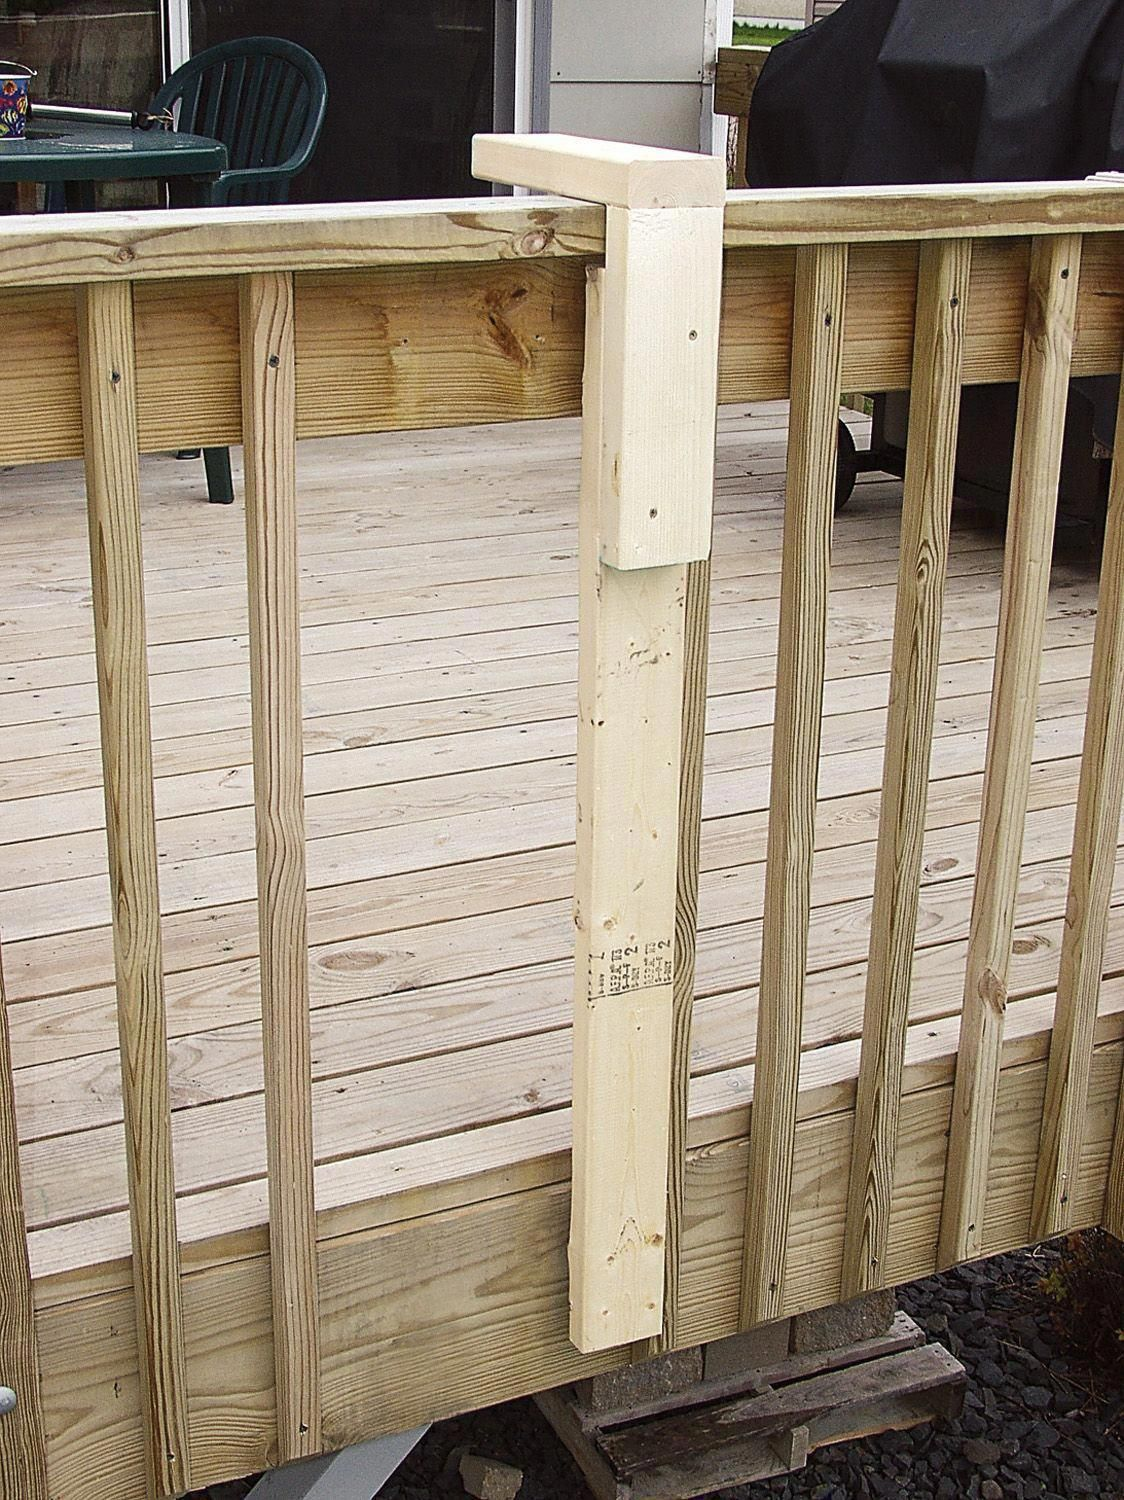 Easy Deck Building Tip A Simple Spindle Placement Jig From Scrap 2 4 Material By Hanging The Jig Over The Top Ra Easy Deck Building Easy Deck Building A Deck